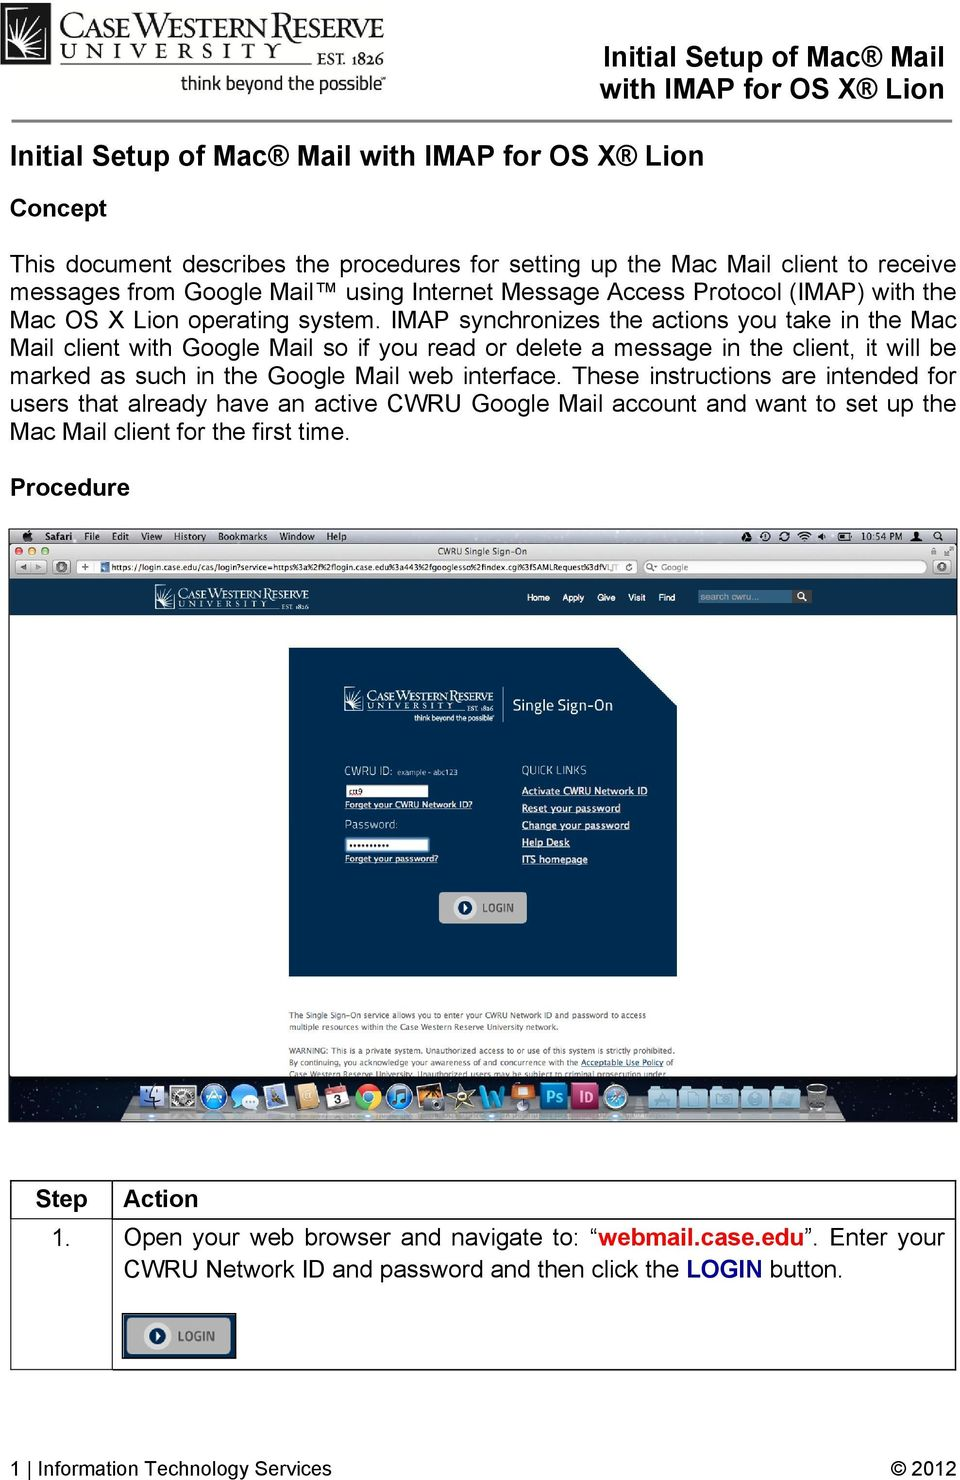 Initial Setup of Mac Mail with IMAP for OS X Lion - PDF